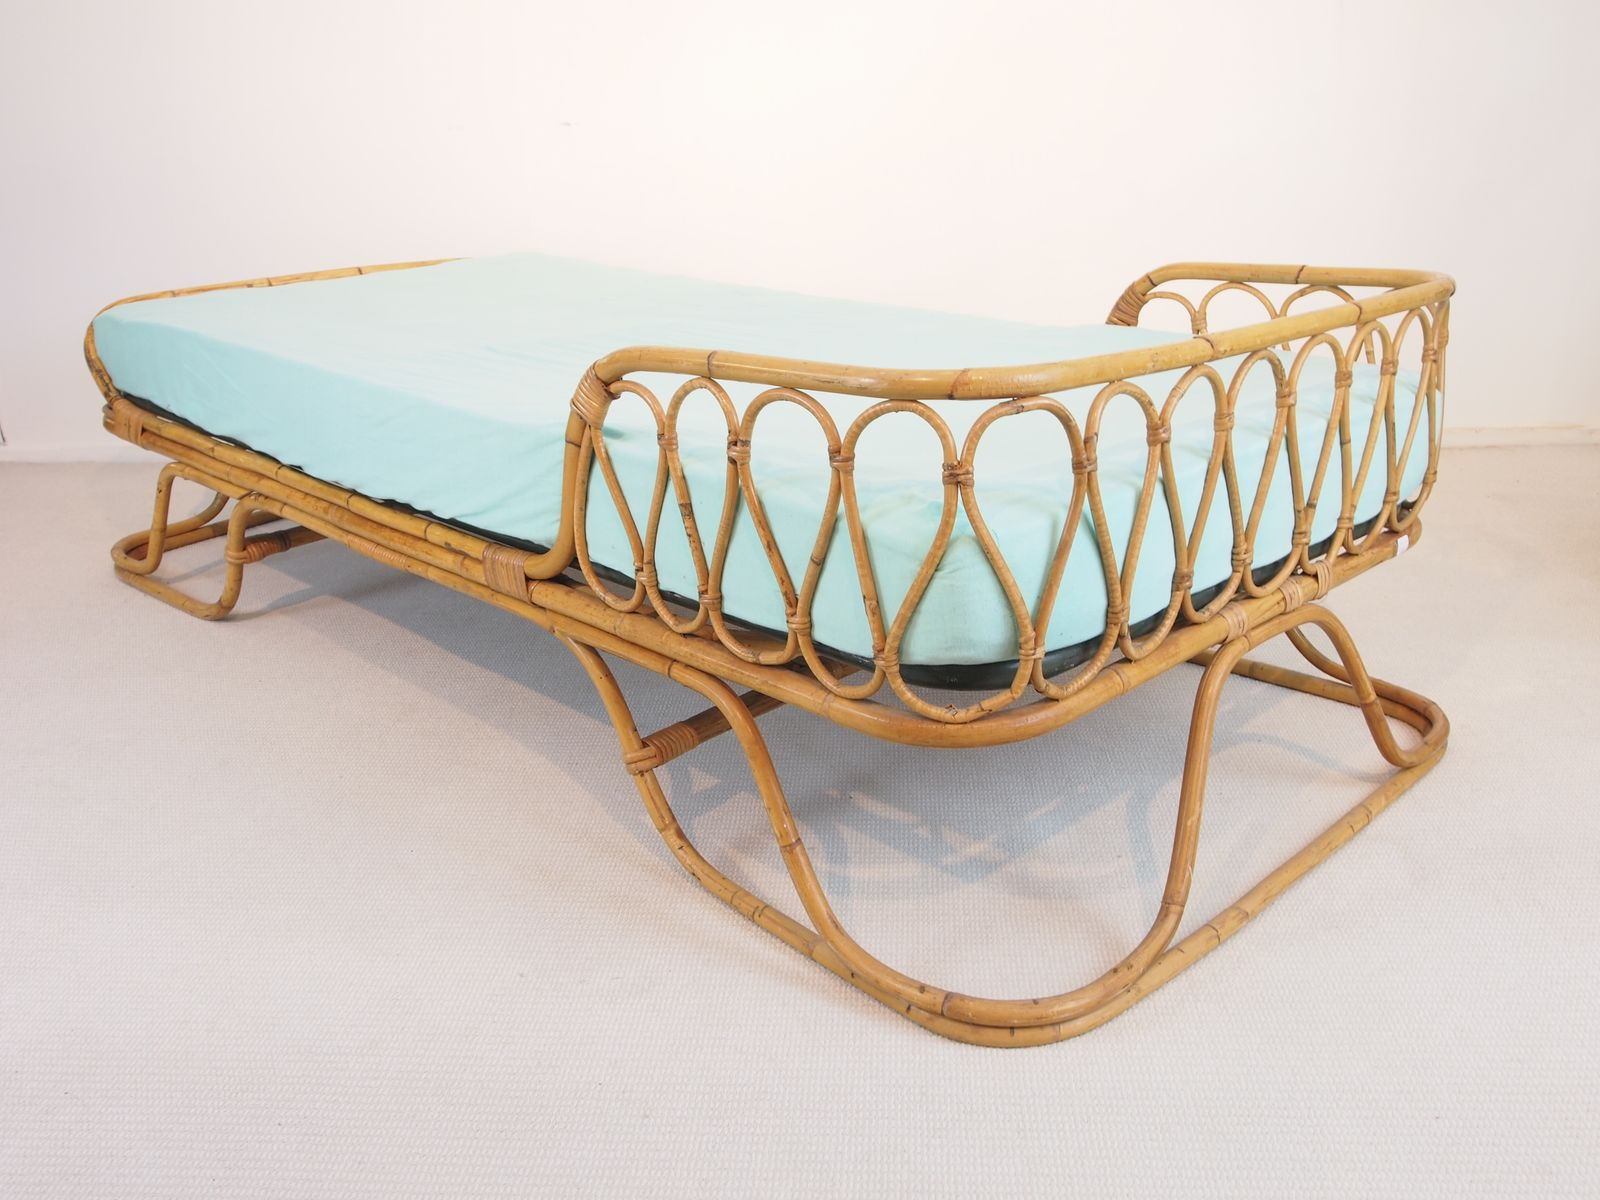 Vintage MidCentury Rattan Daybed for sale at Pamono